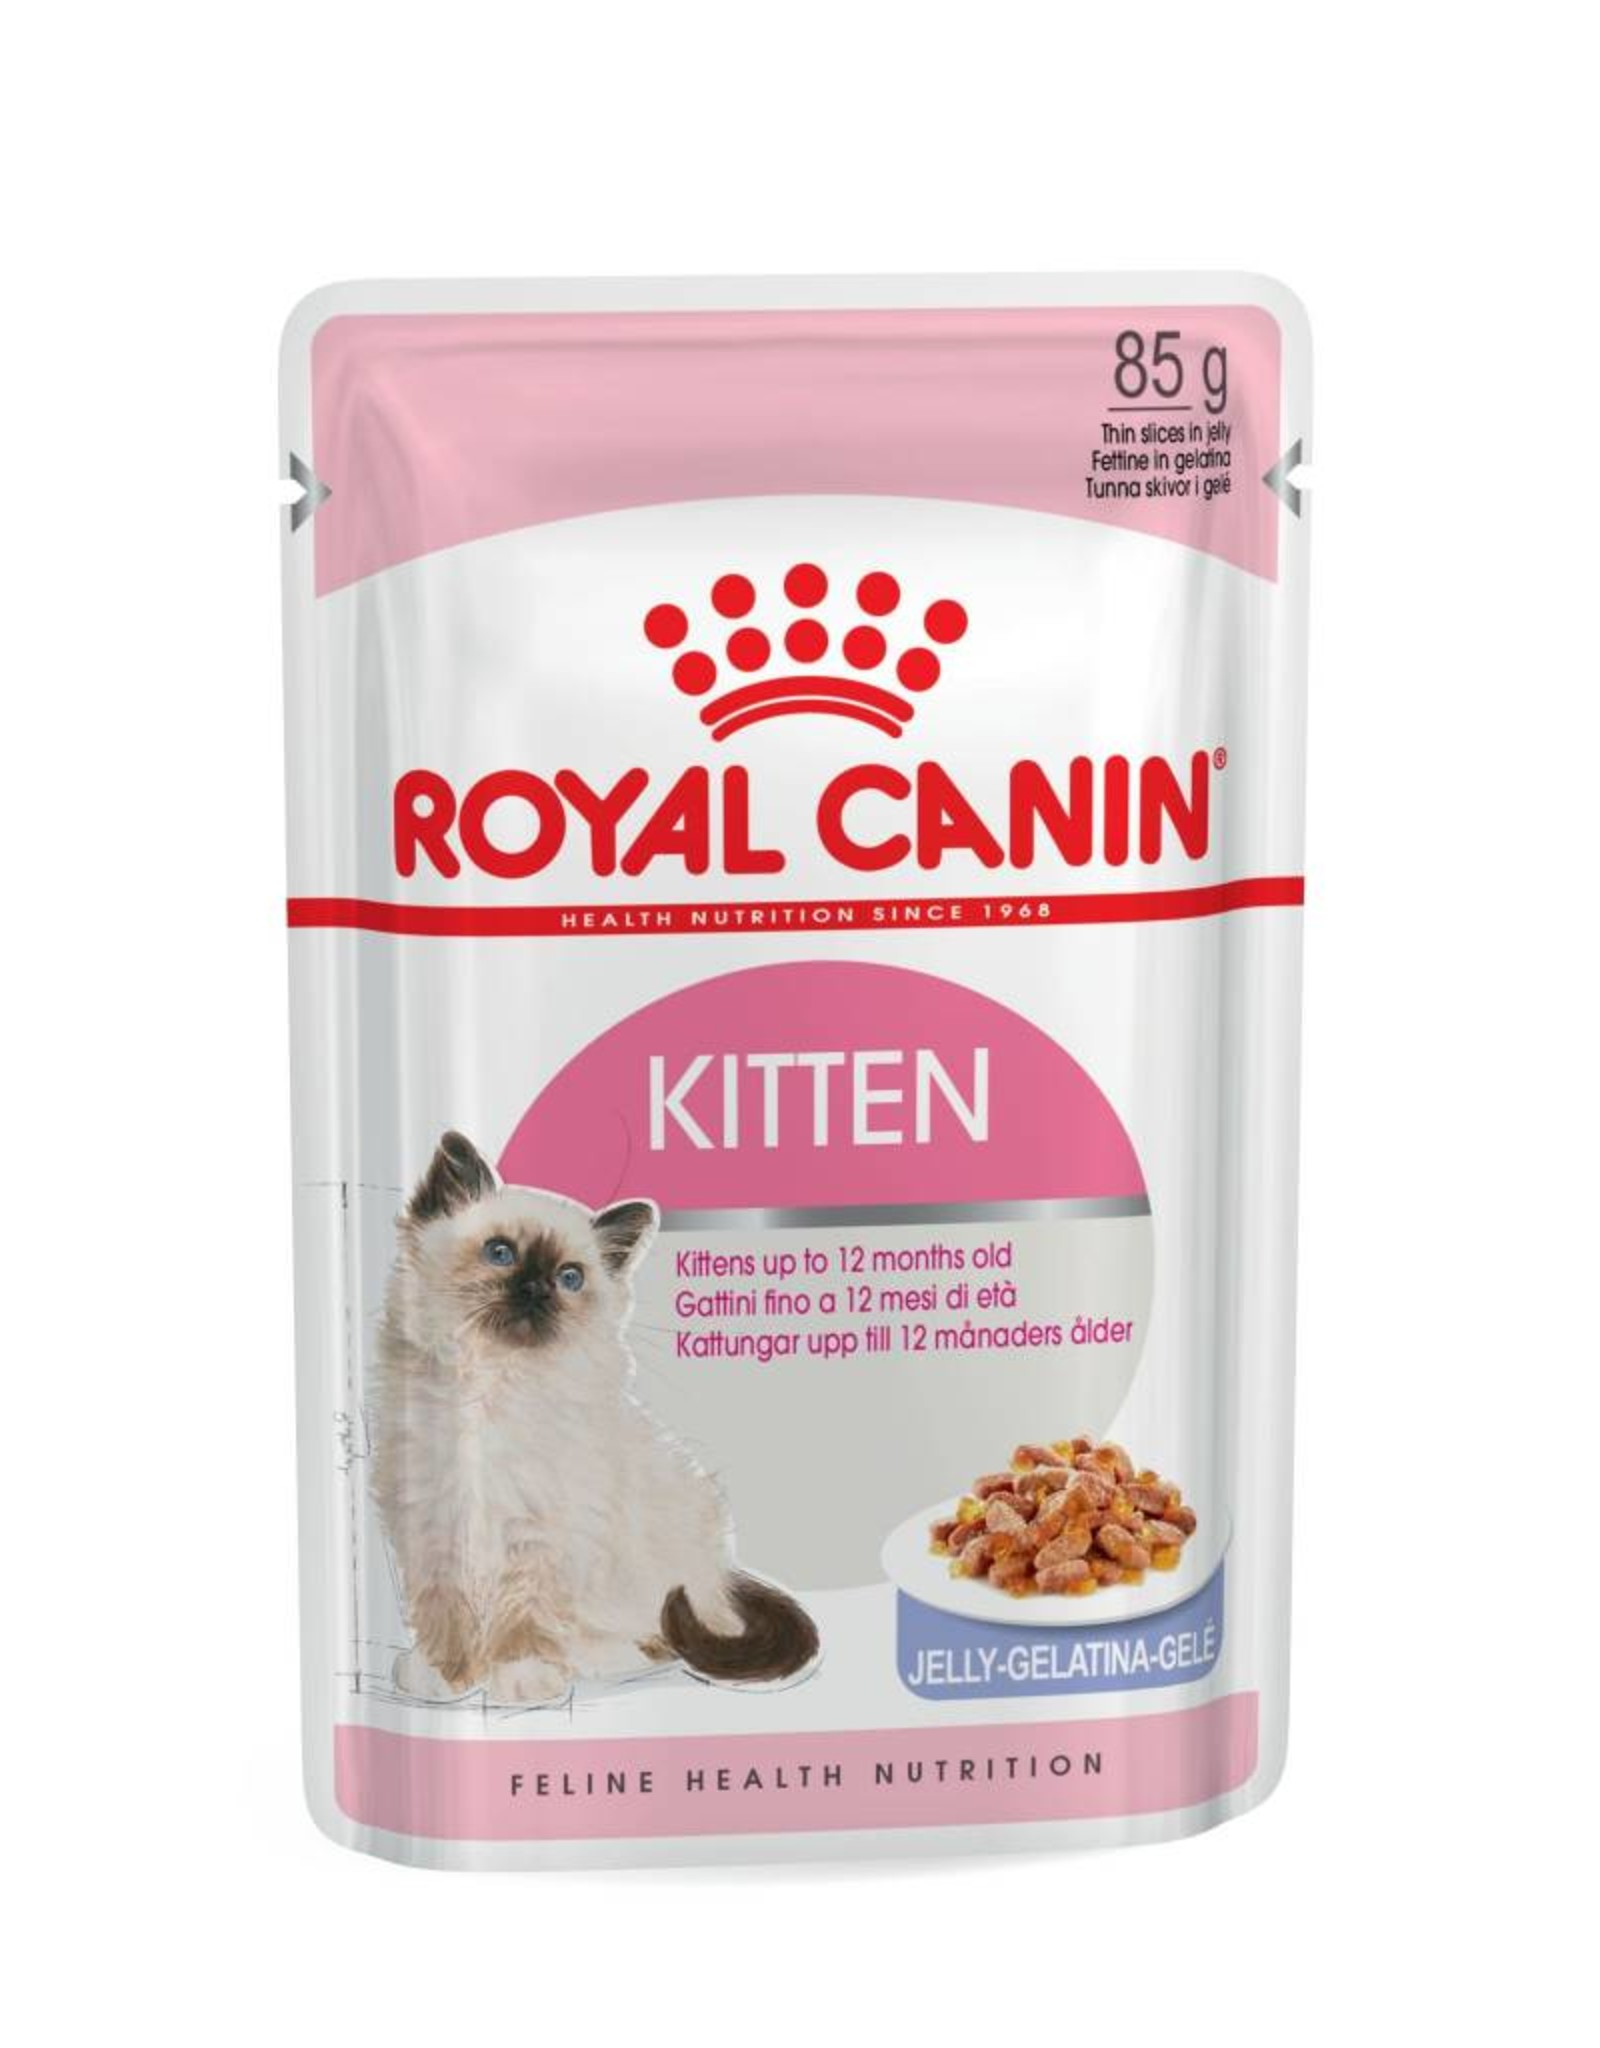 Royal Canin Kitten Wet Food Pouch with Jelly, 85g